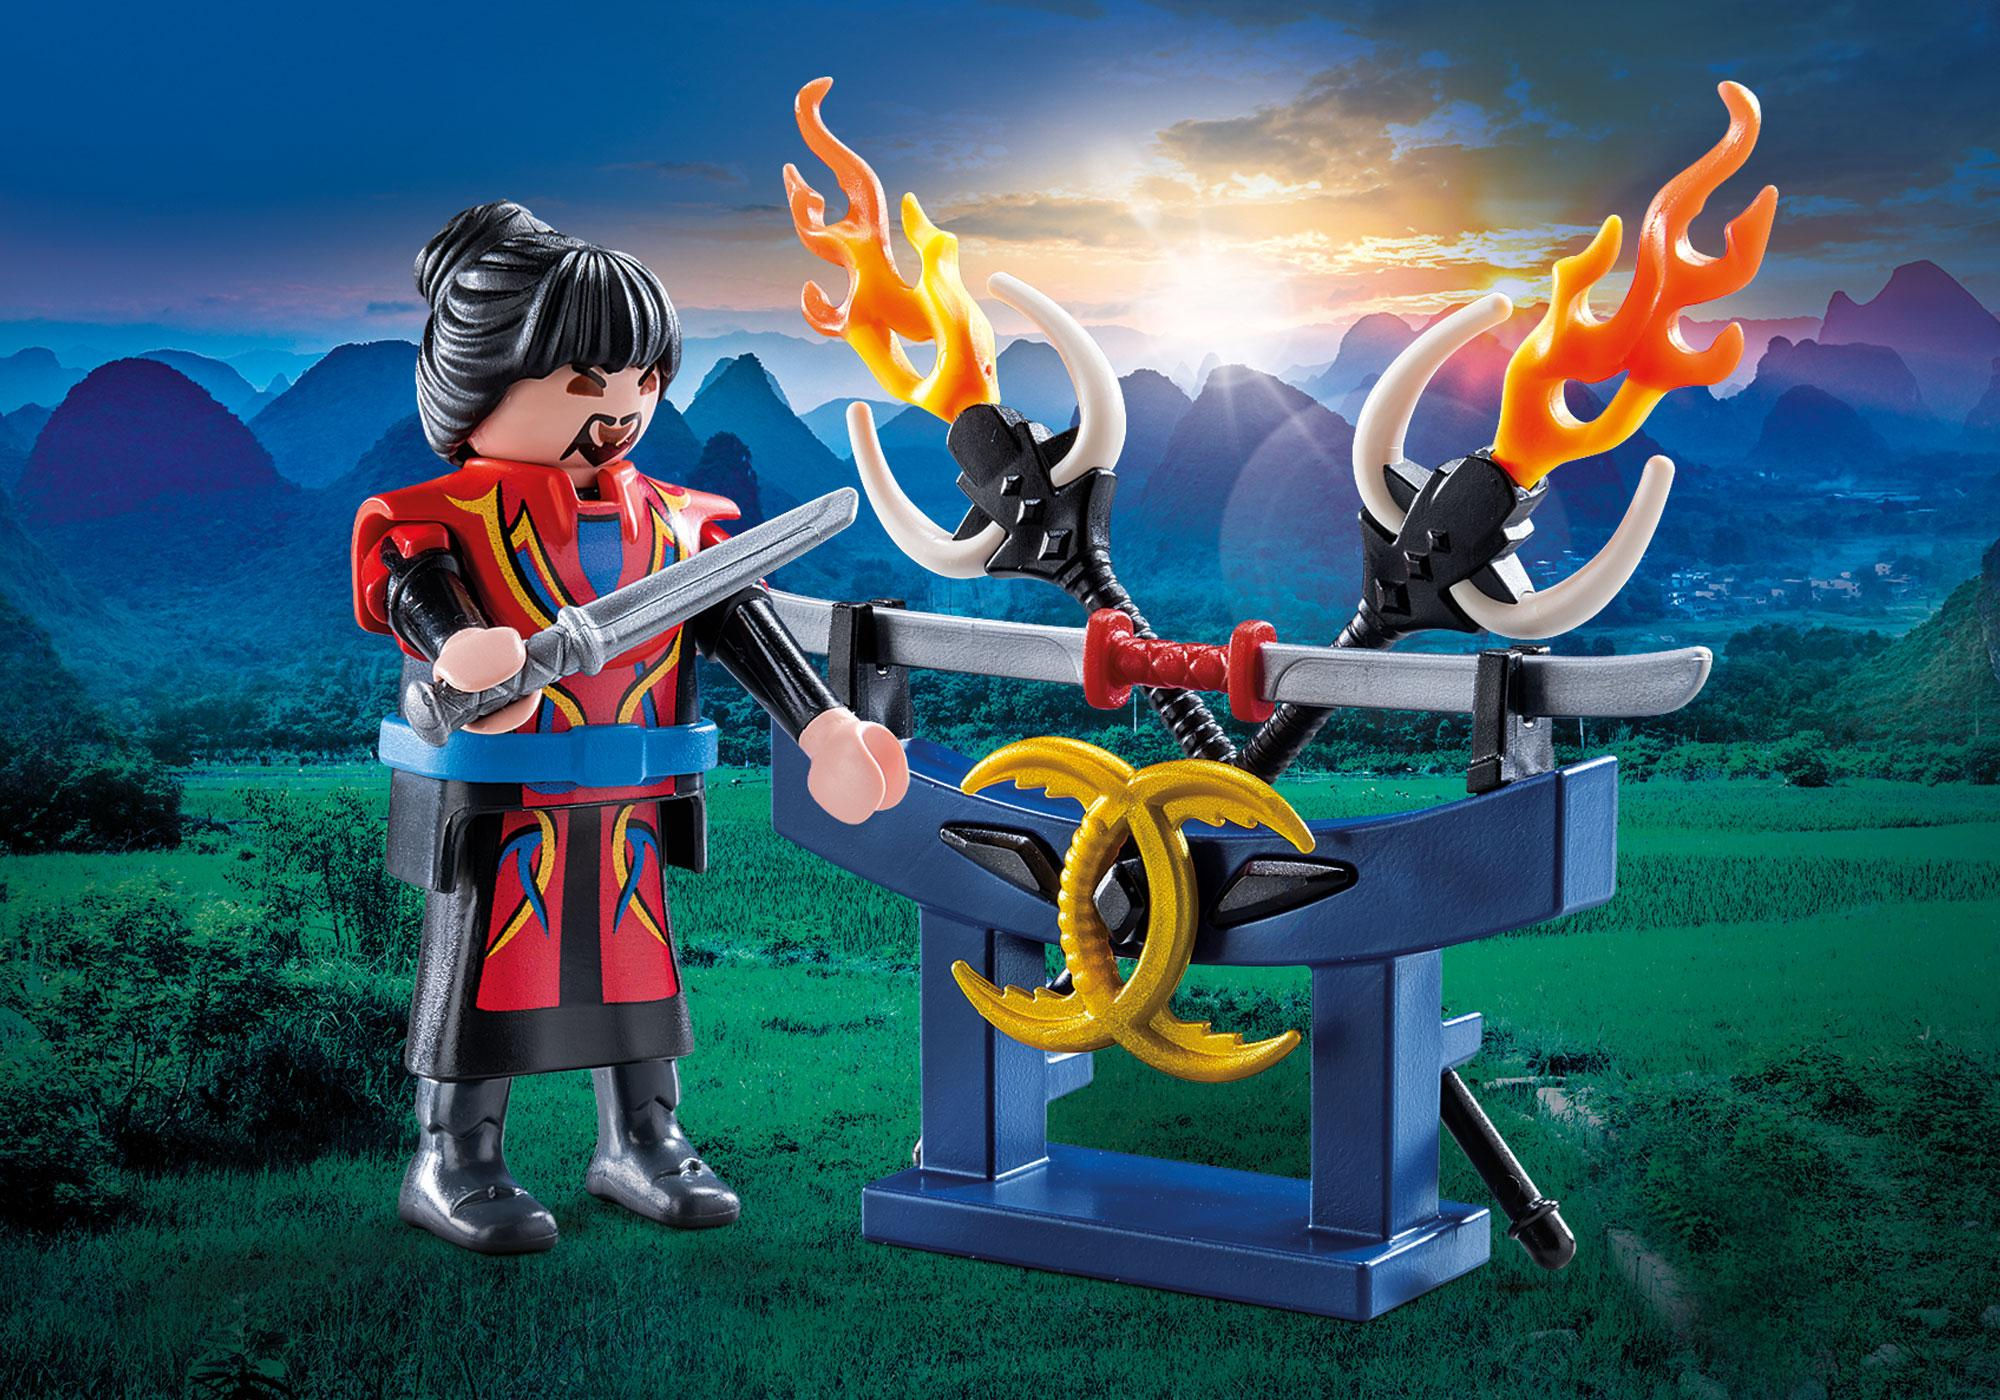 http://media.playmobil.com/i/playmobil/70158_product_detail/Asiakämpfer